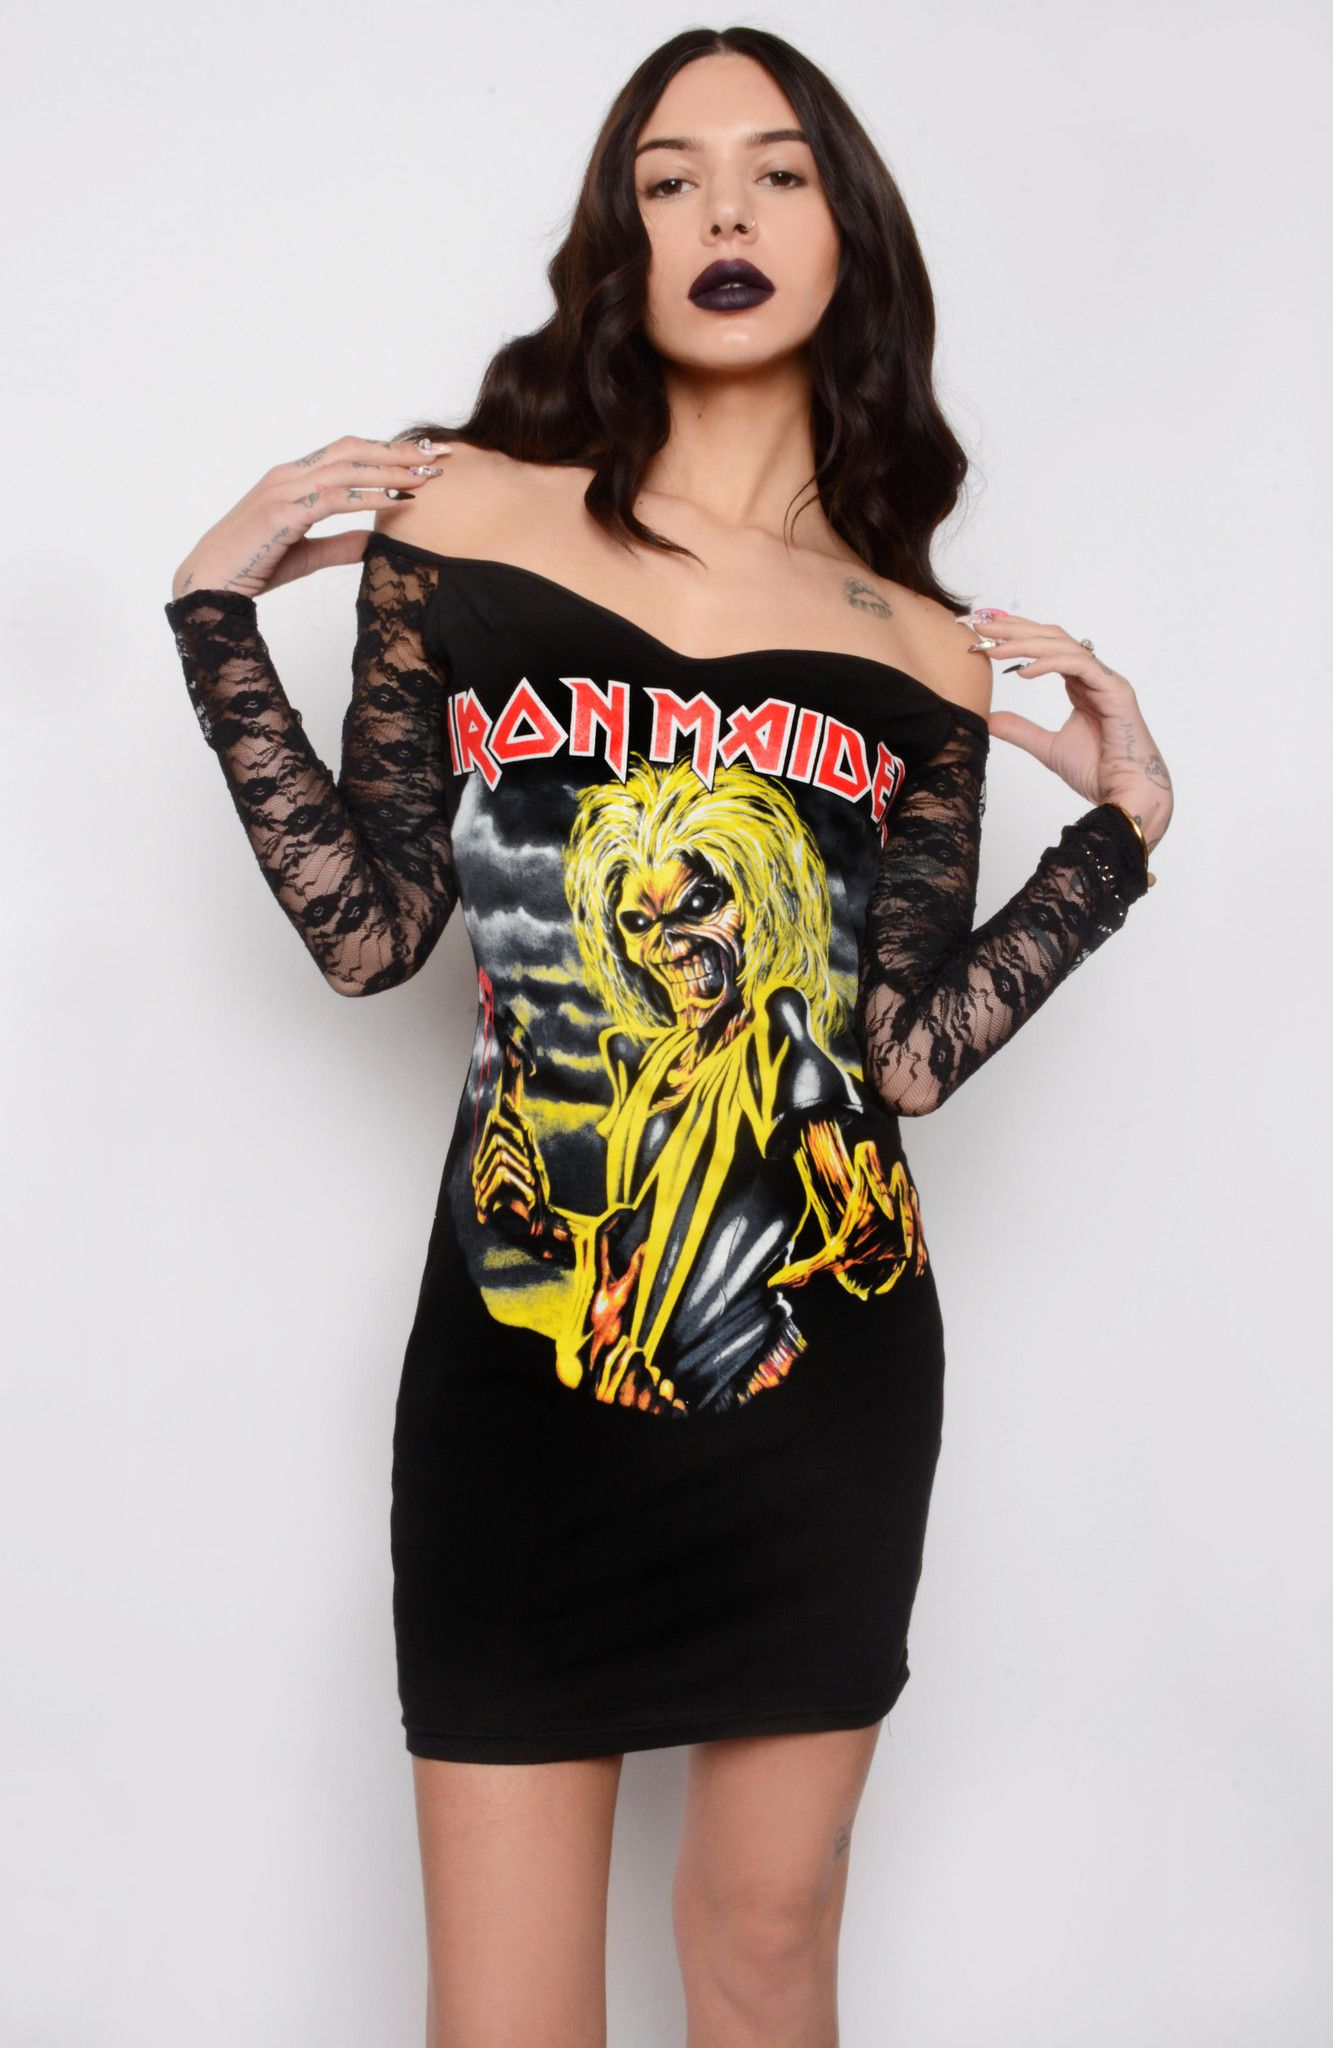 4f69a13efcc2 Custom made Iron Maiden Off- Shoulder Lace Dress! Altered from a black  men s t-shirt featuring off-the-shoulder lace sleeves and a sweetheart  neckline with ...